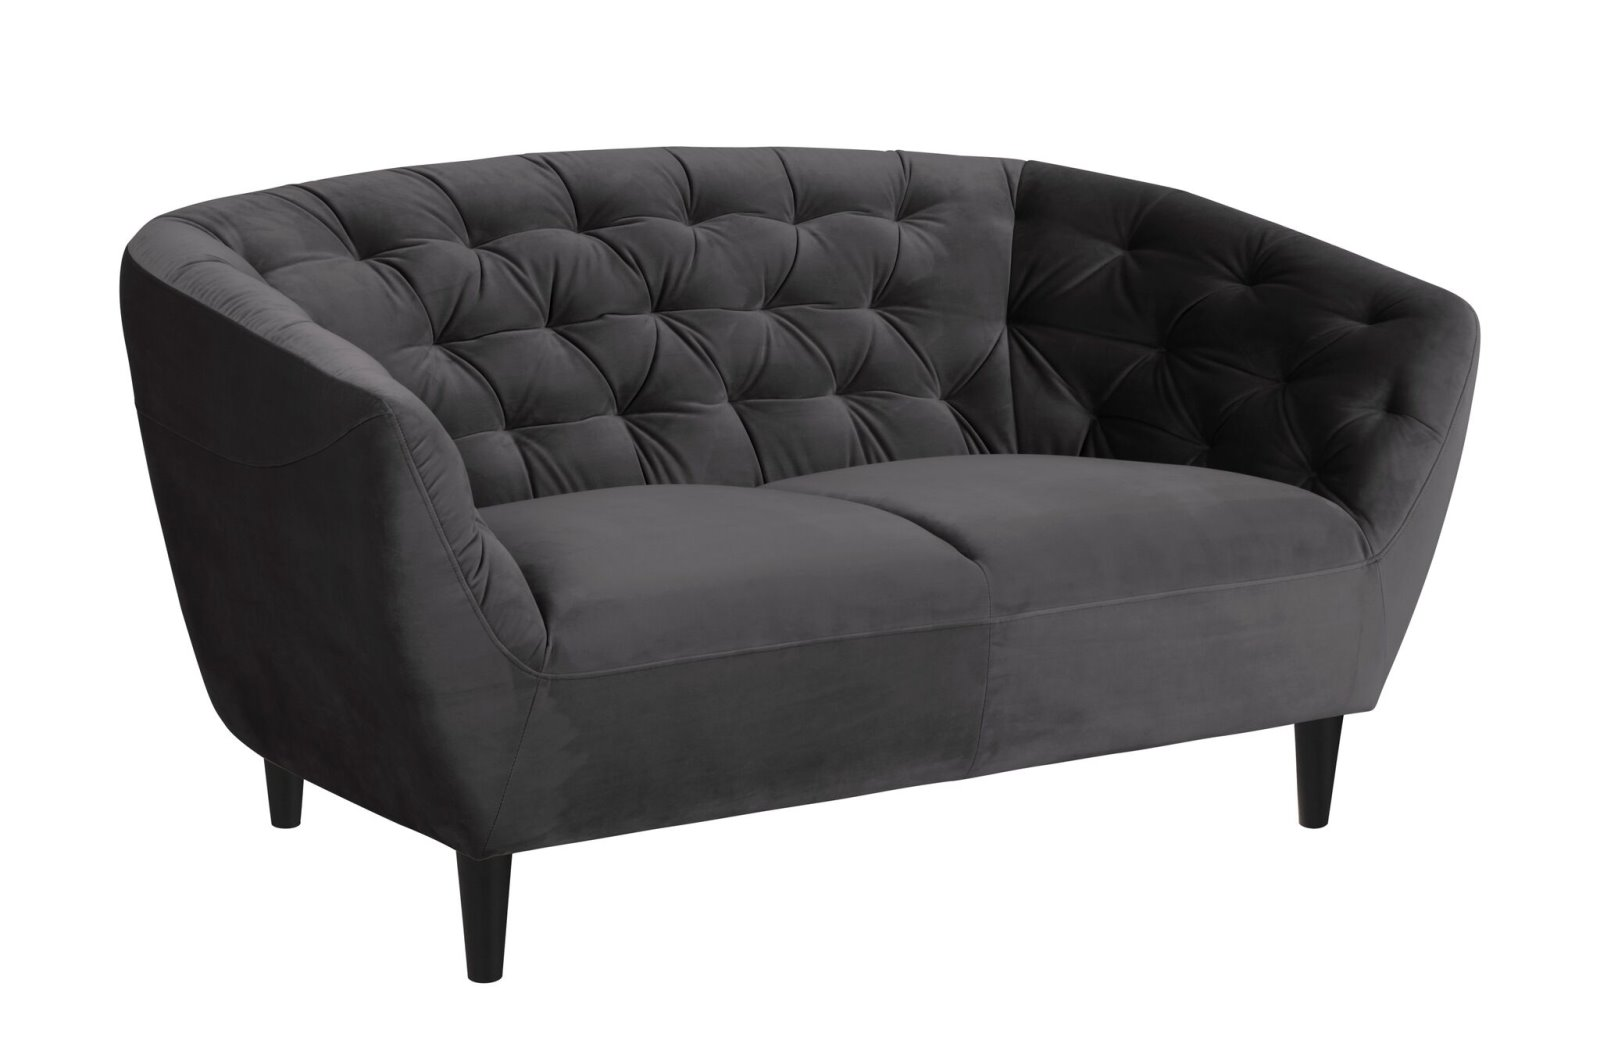 sofa rian 2 sitzer in dunkelgrau couch 2 personen. Black Bedroom Furniture Sets. Home Design Ideas